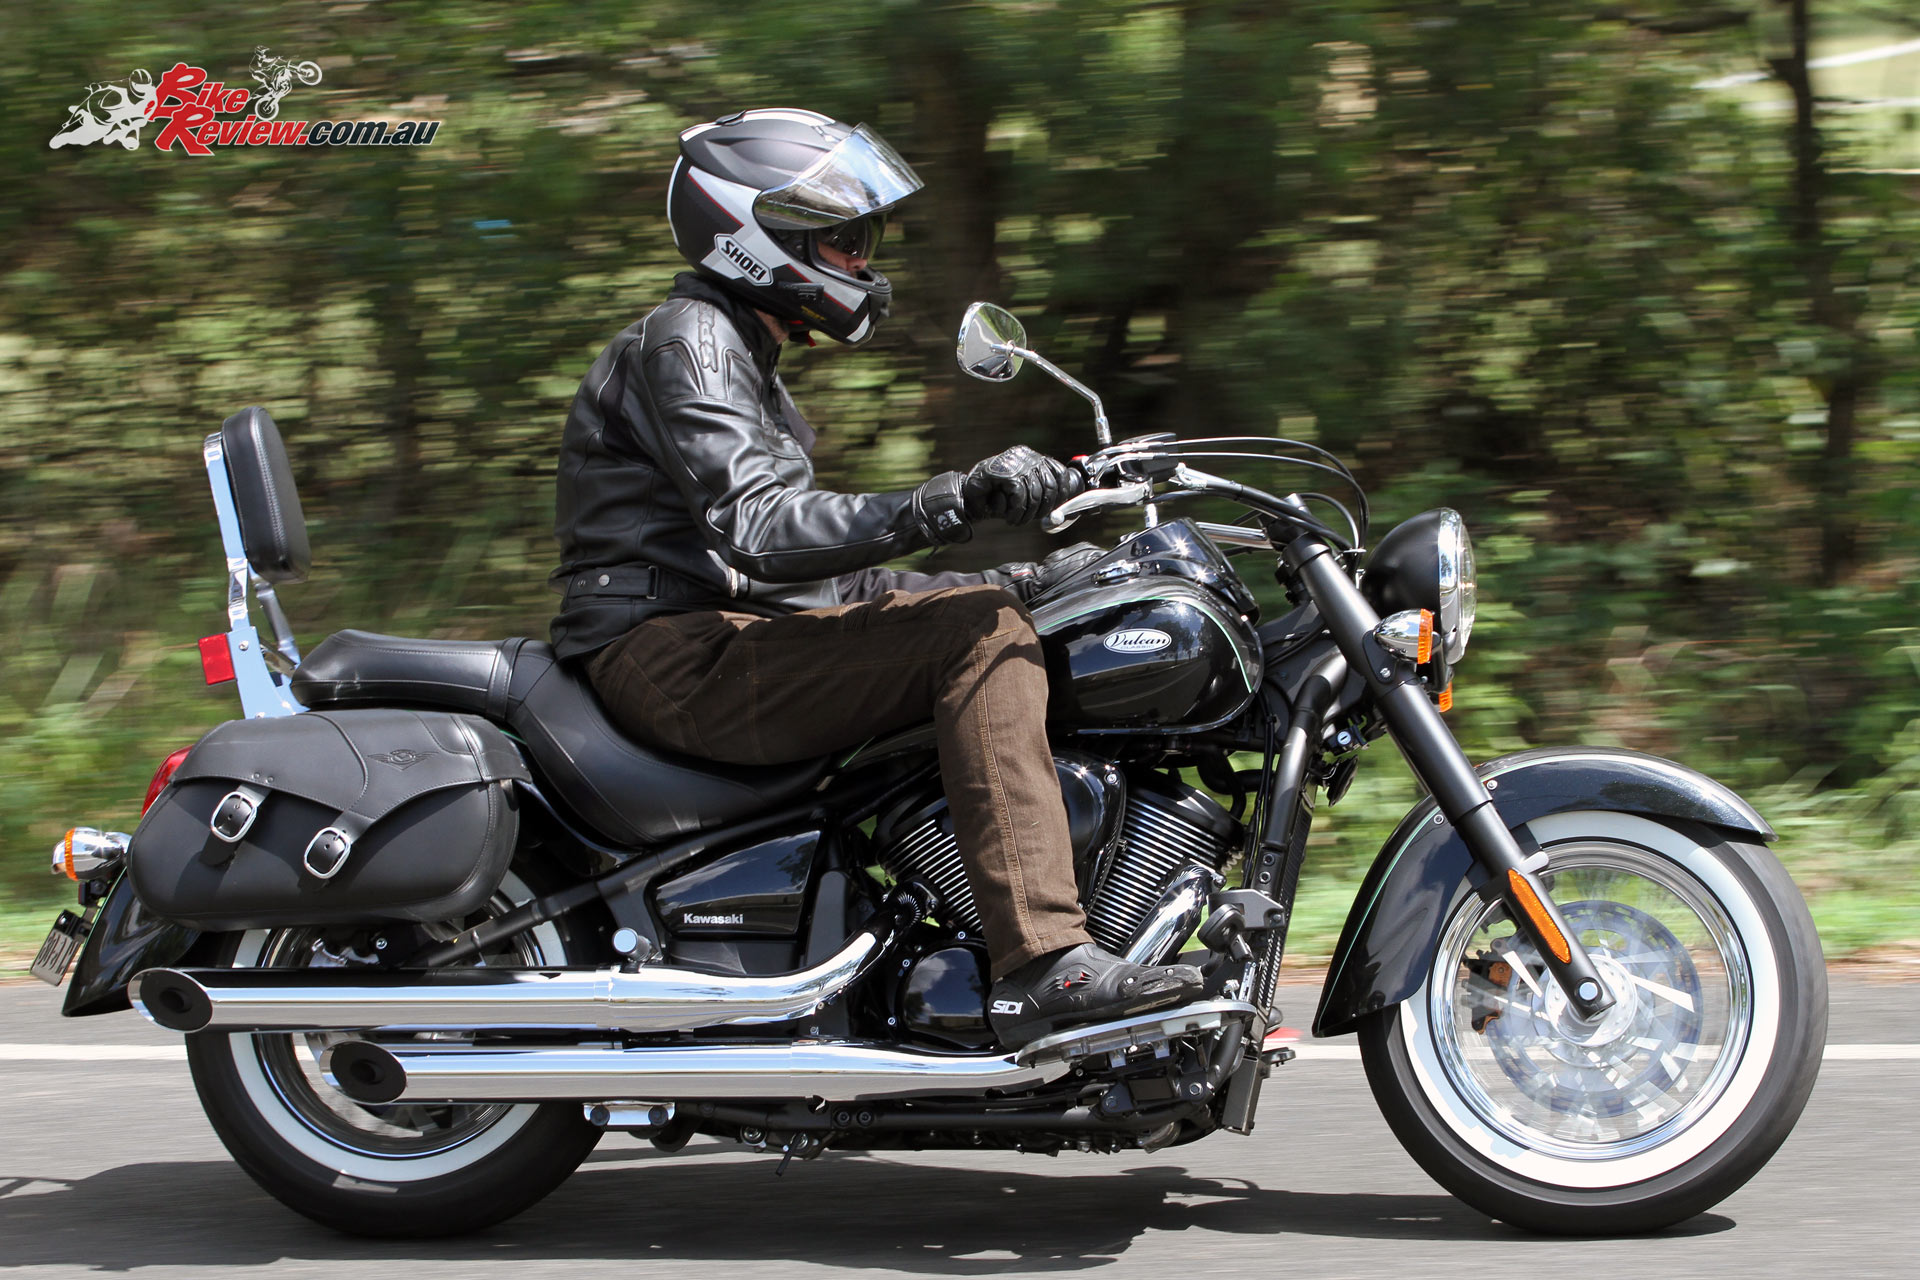 Kawasaki Vulcan Review